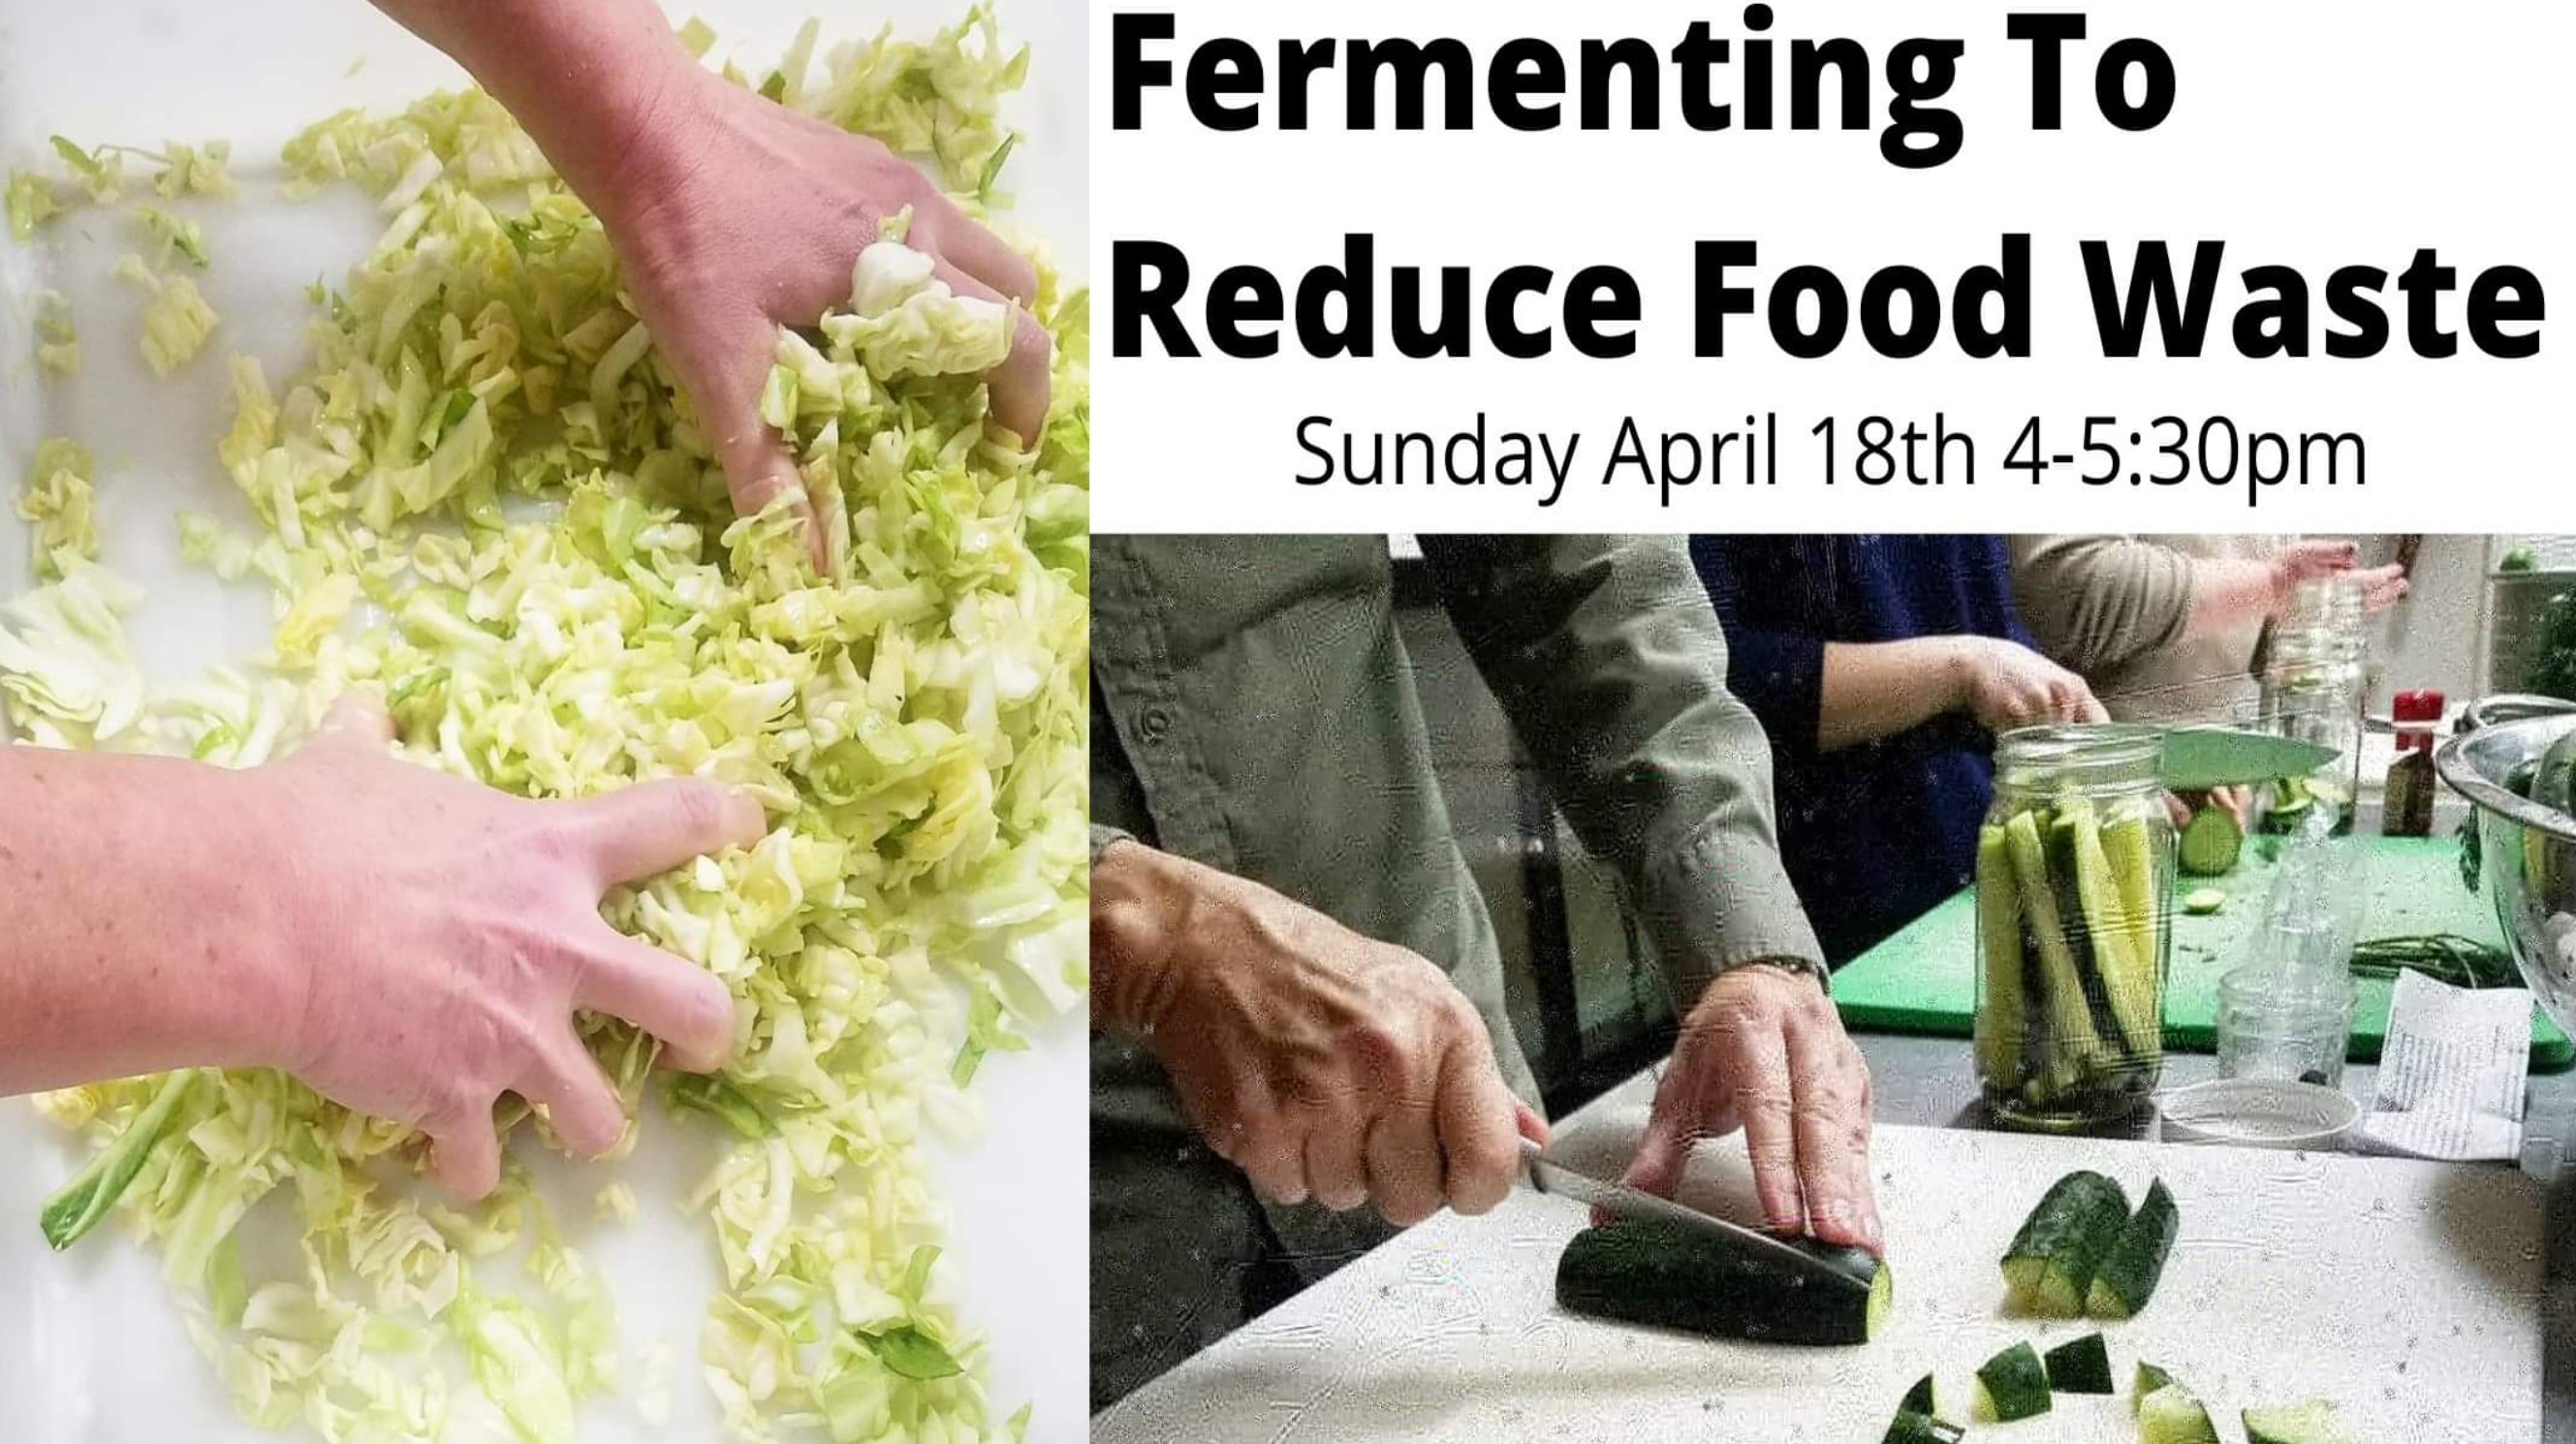 Fermenting to Reduce Food Waste